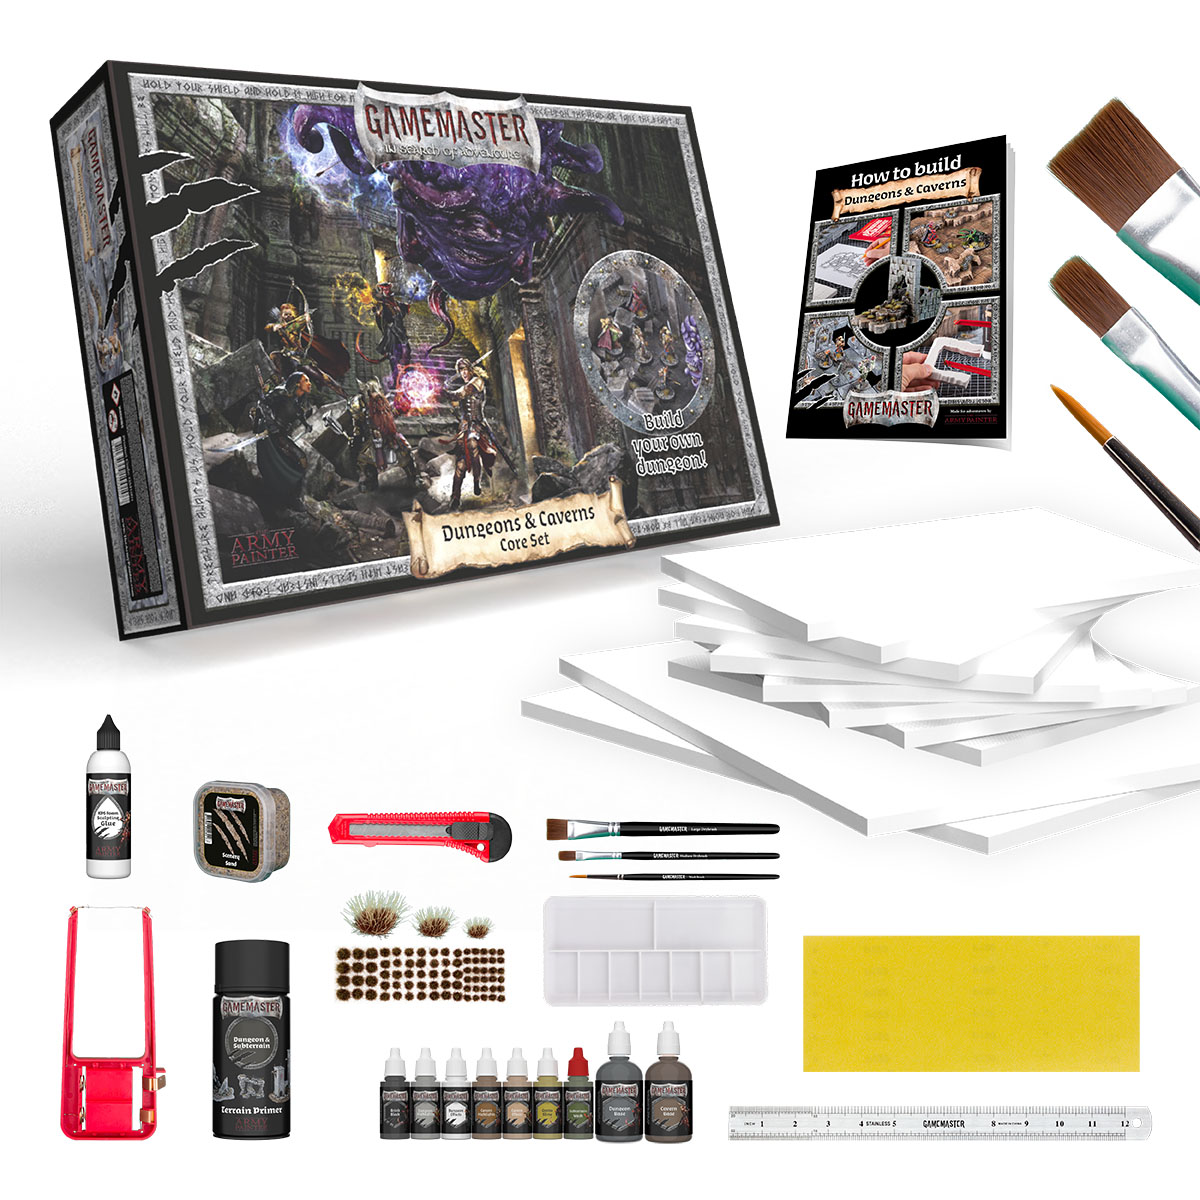 GAMEMASTER Dungeons & Caverns Core Set, GM1001